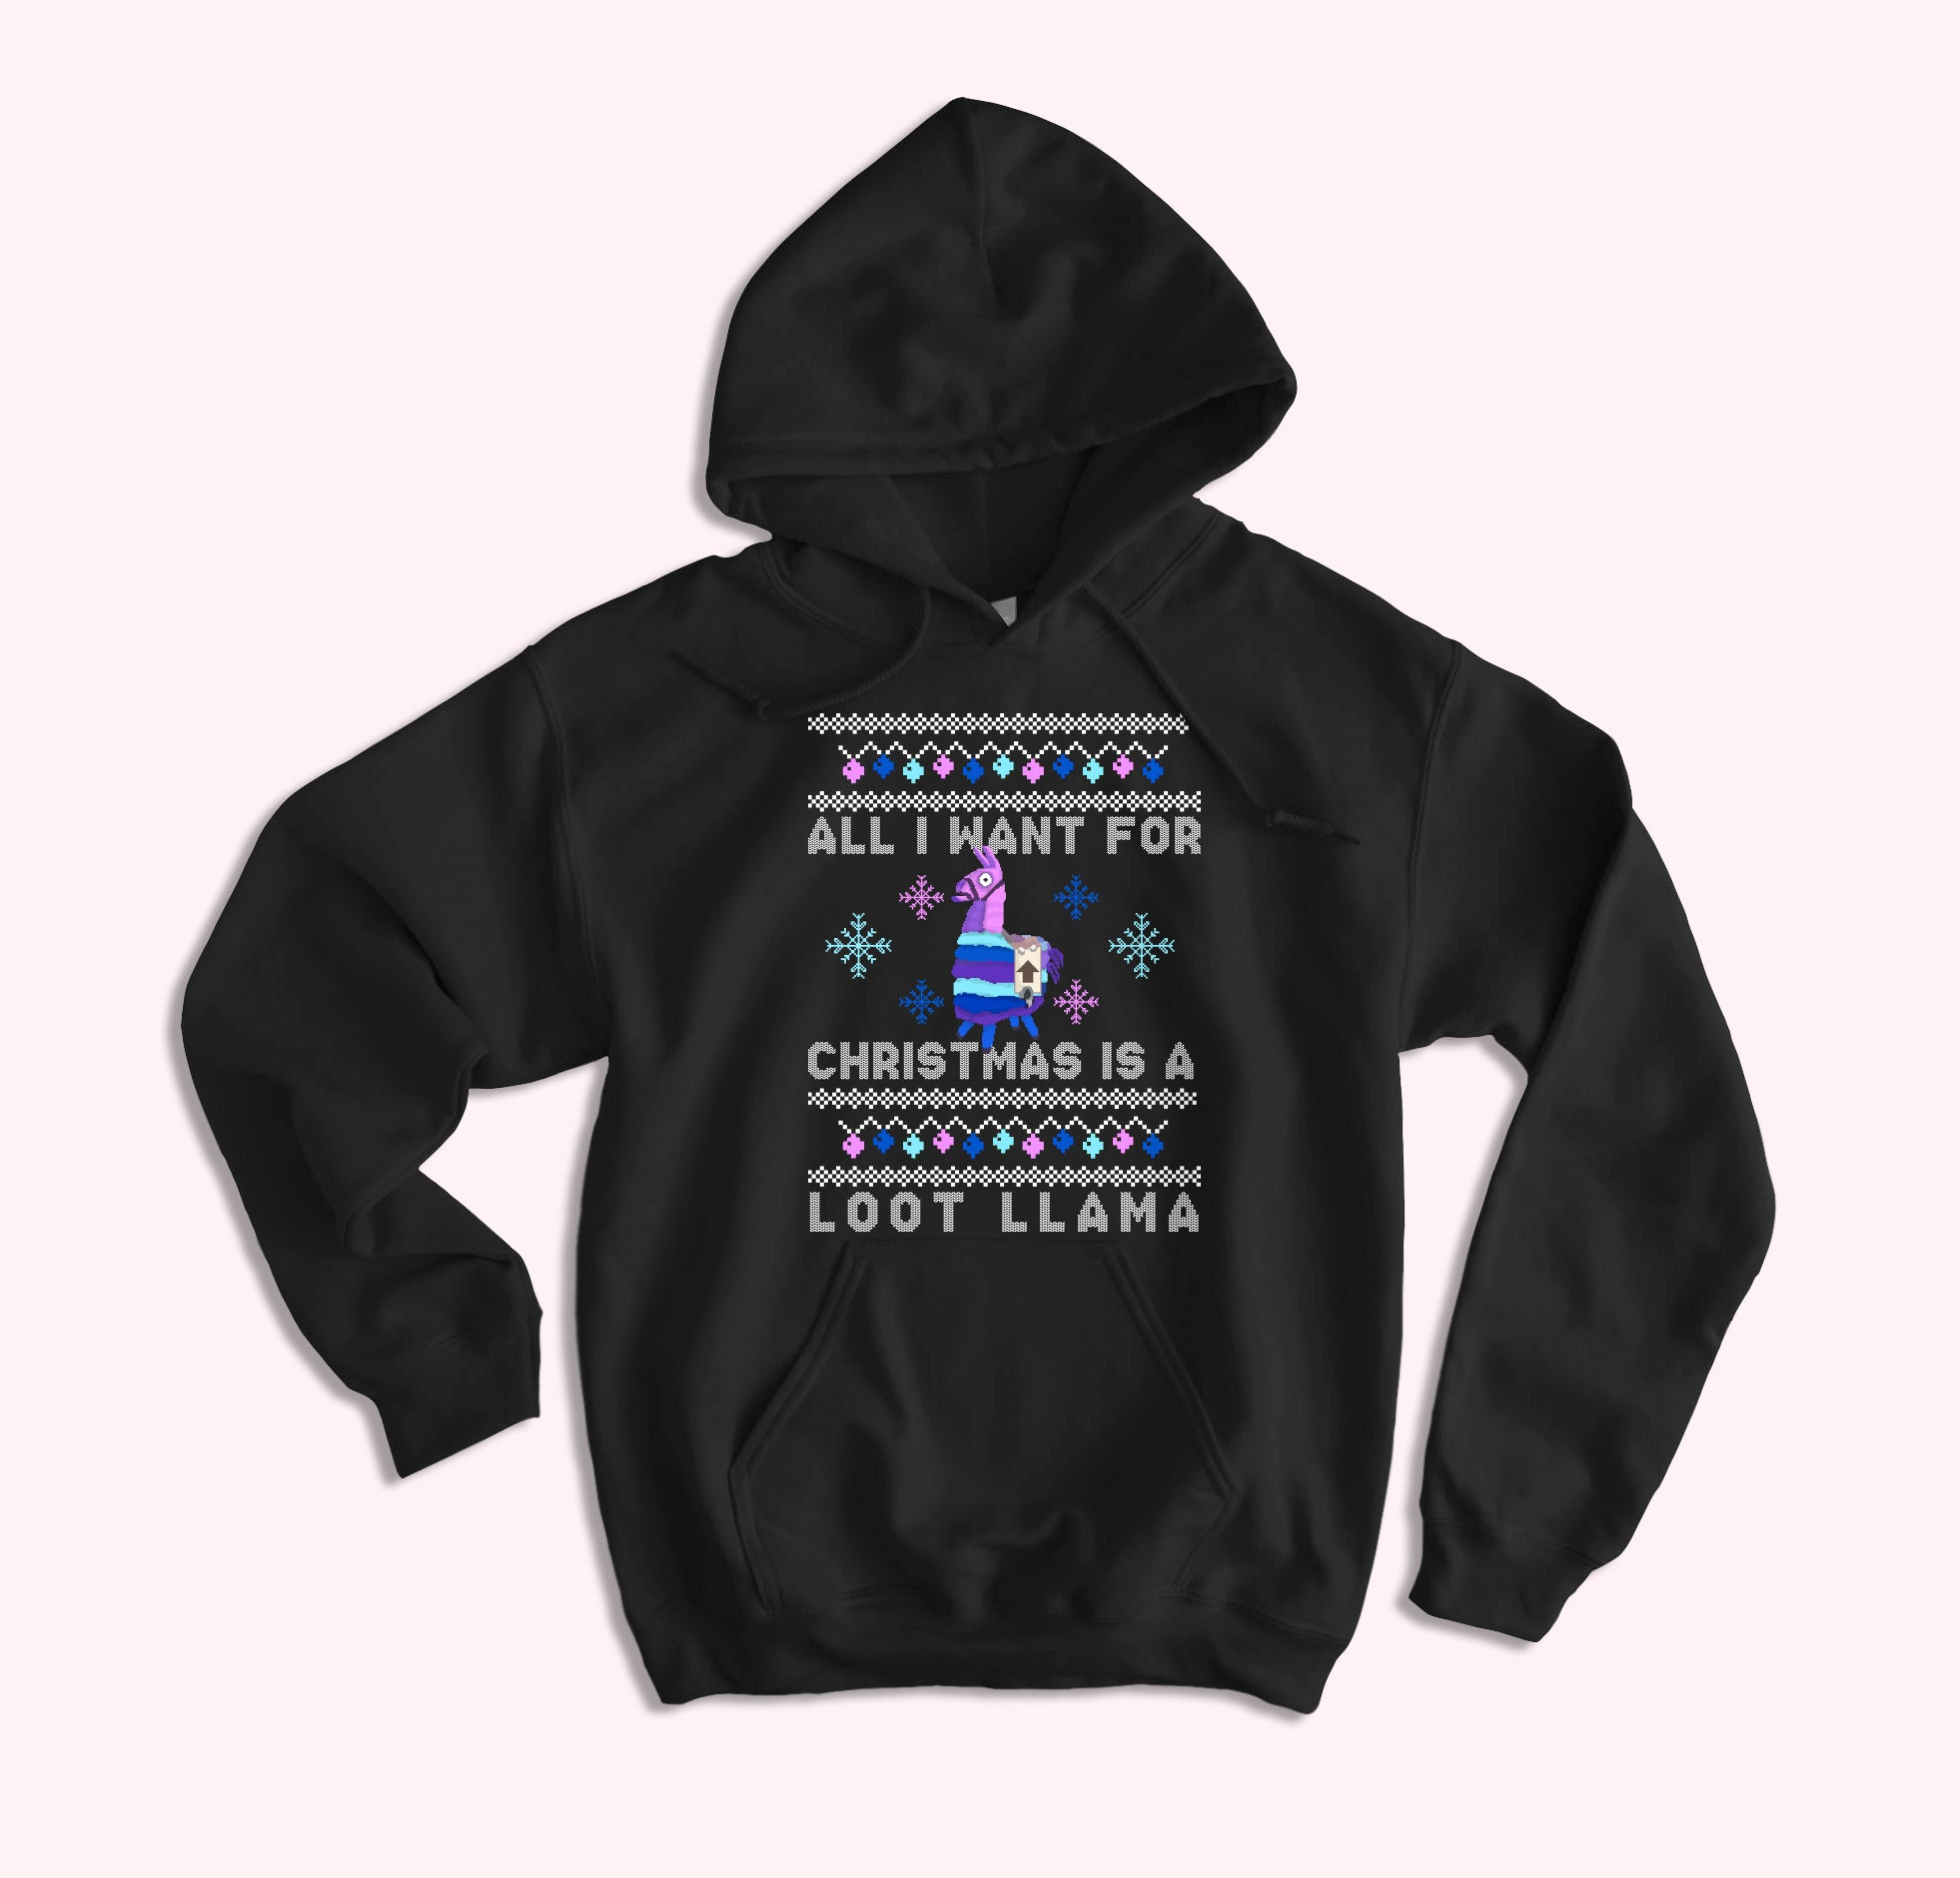 All I Want For Christmas Is A Loot Llama Hoodie